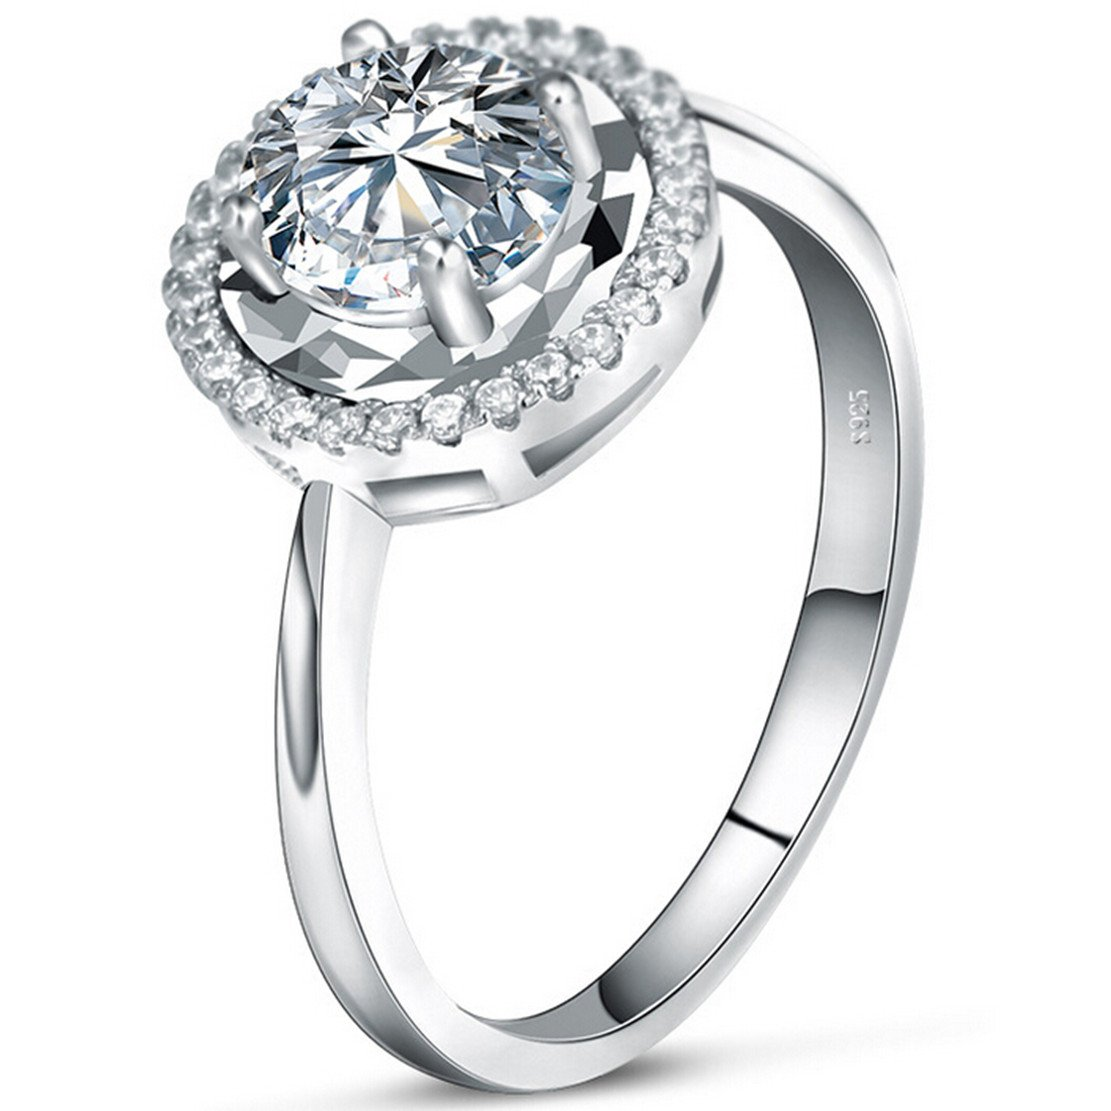 Silver Masters Women's Fine Statement Rings 925 Sterling Silver Rings Highest Quality CZ Cubic Zirconia Size 7